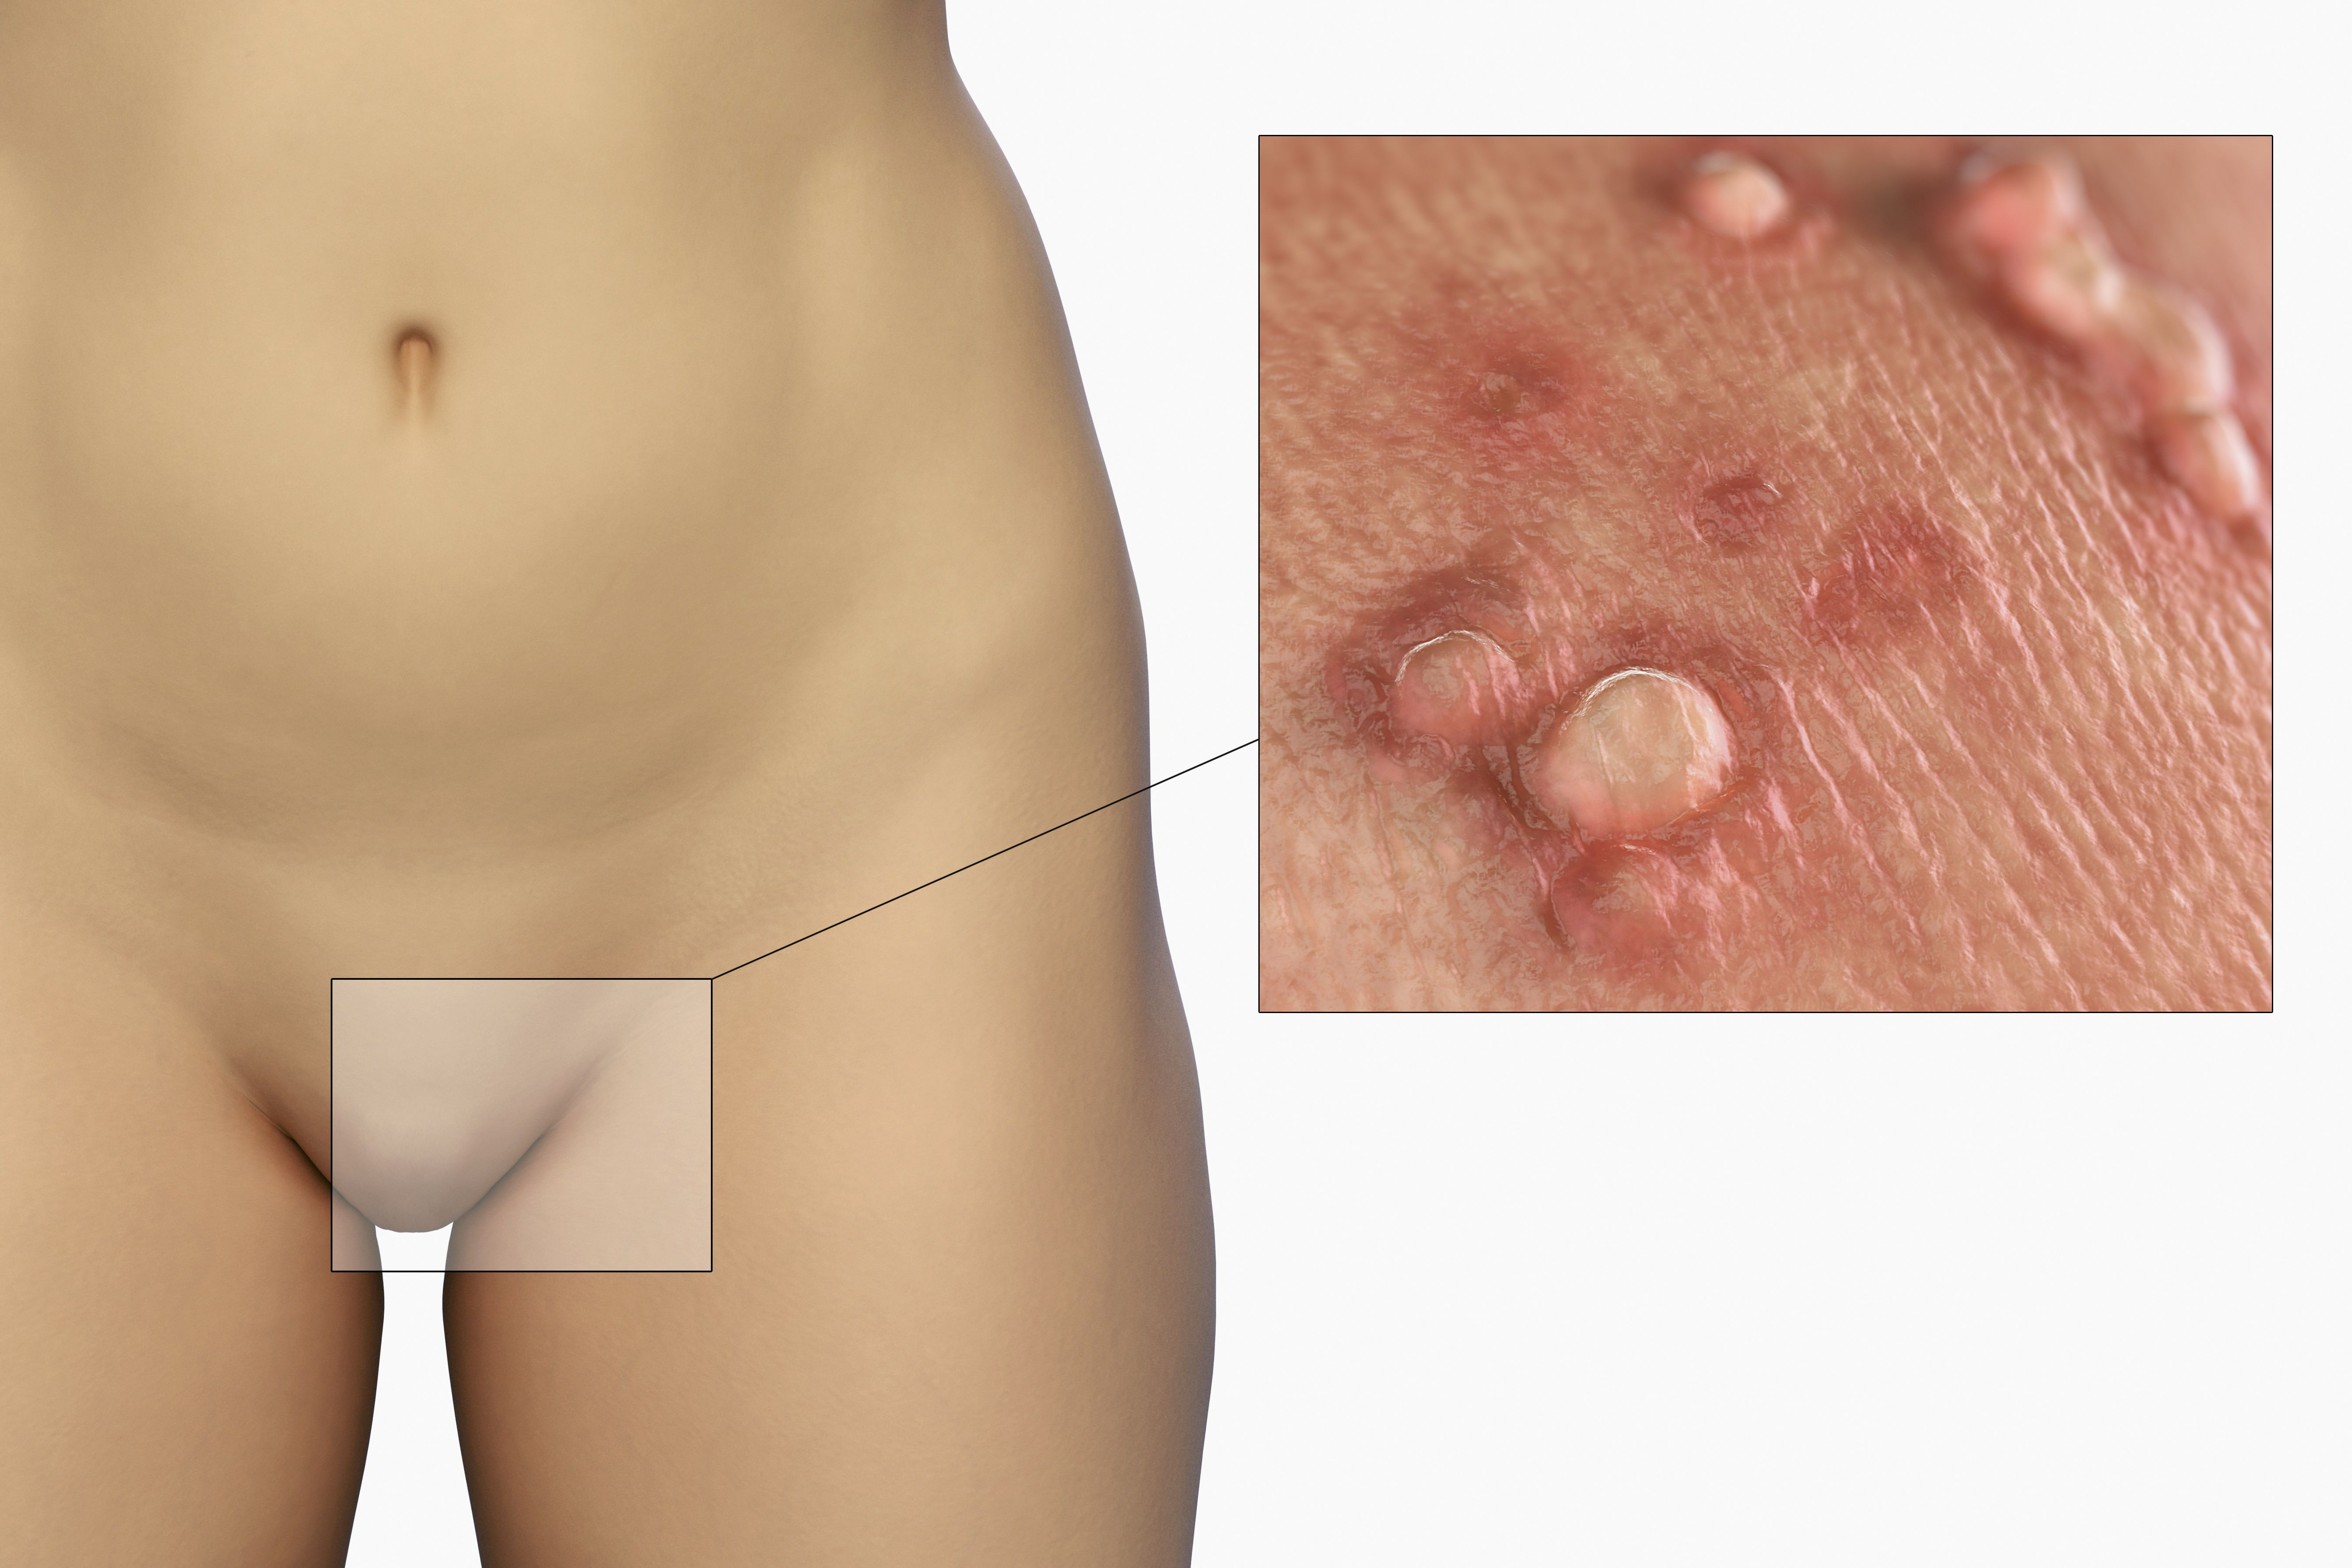 Essentials of Genital Warts and How They Spread